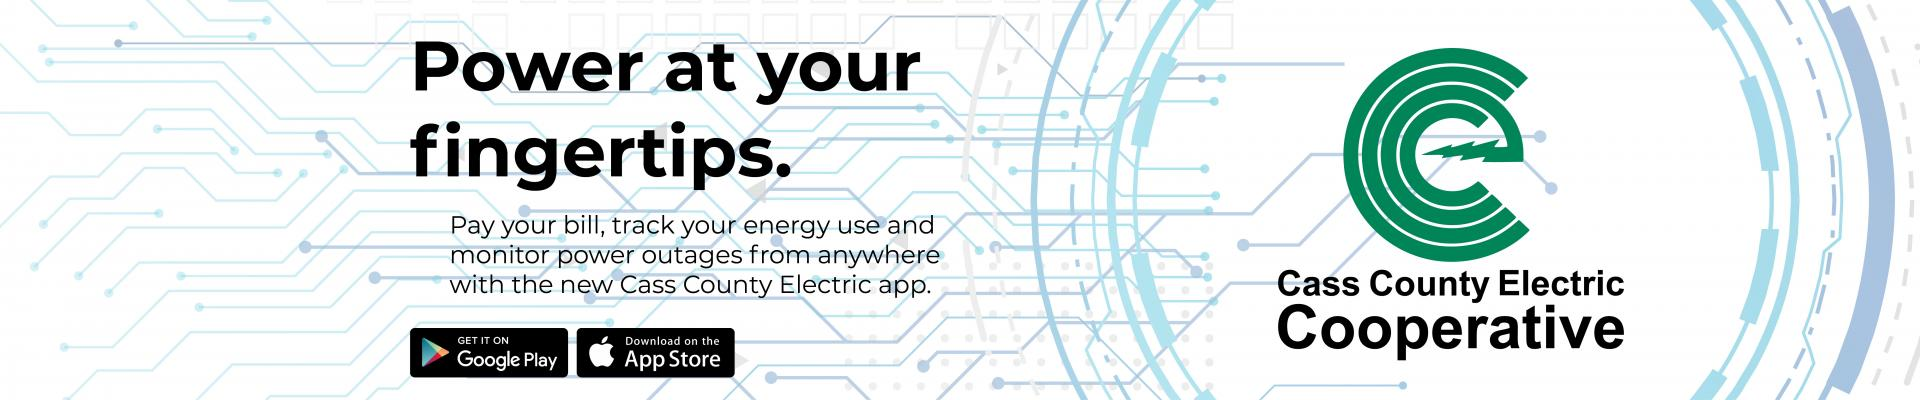 Power at your fingertips. Download new Cass County Electric app.